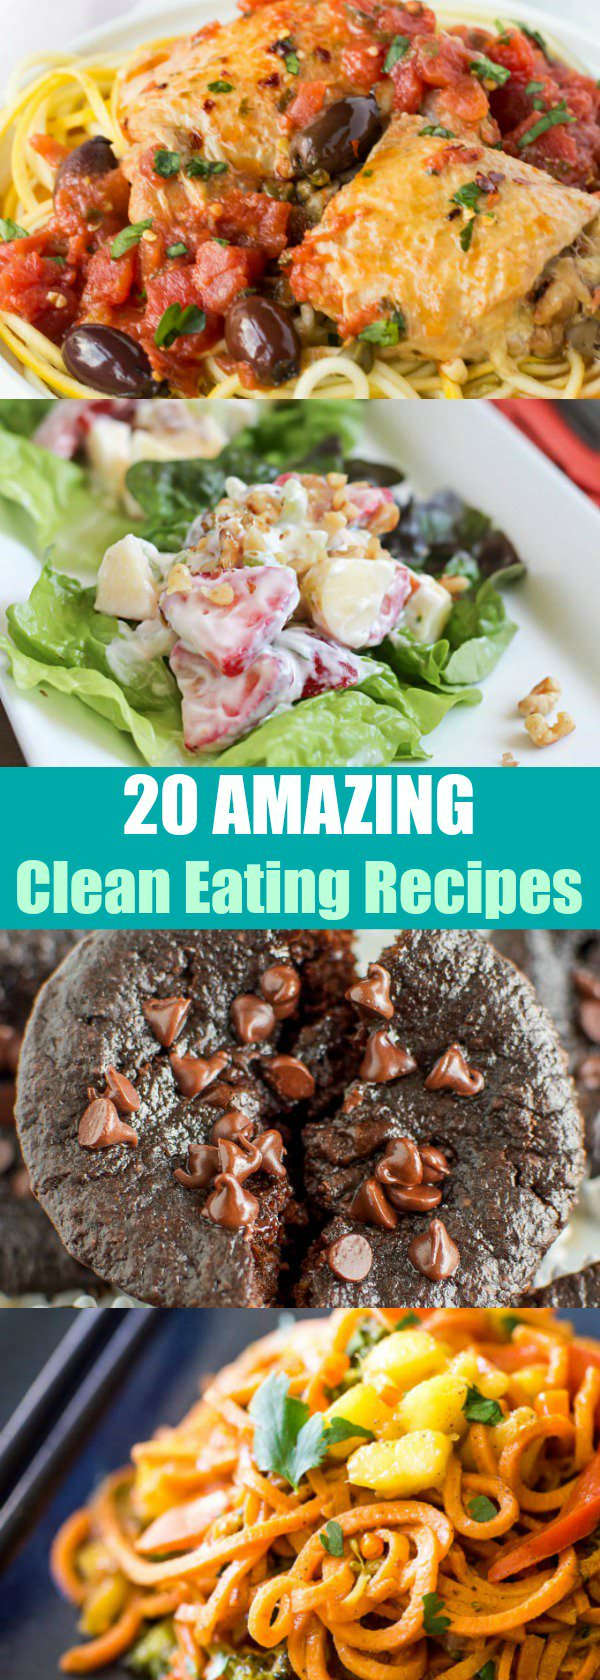 Give your healthy diet a boost with these 20 clean eating recipes that you'll love to try!